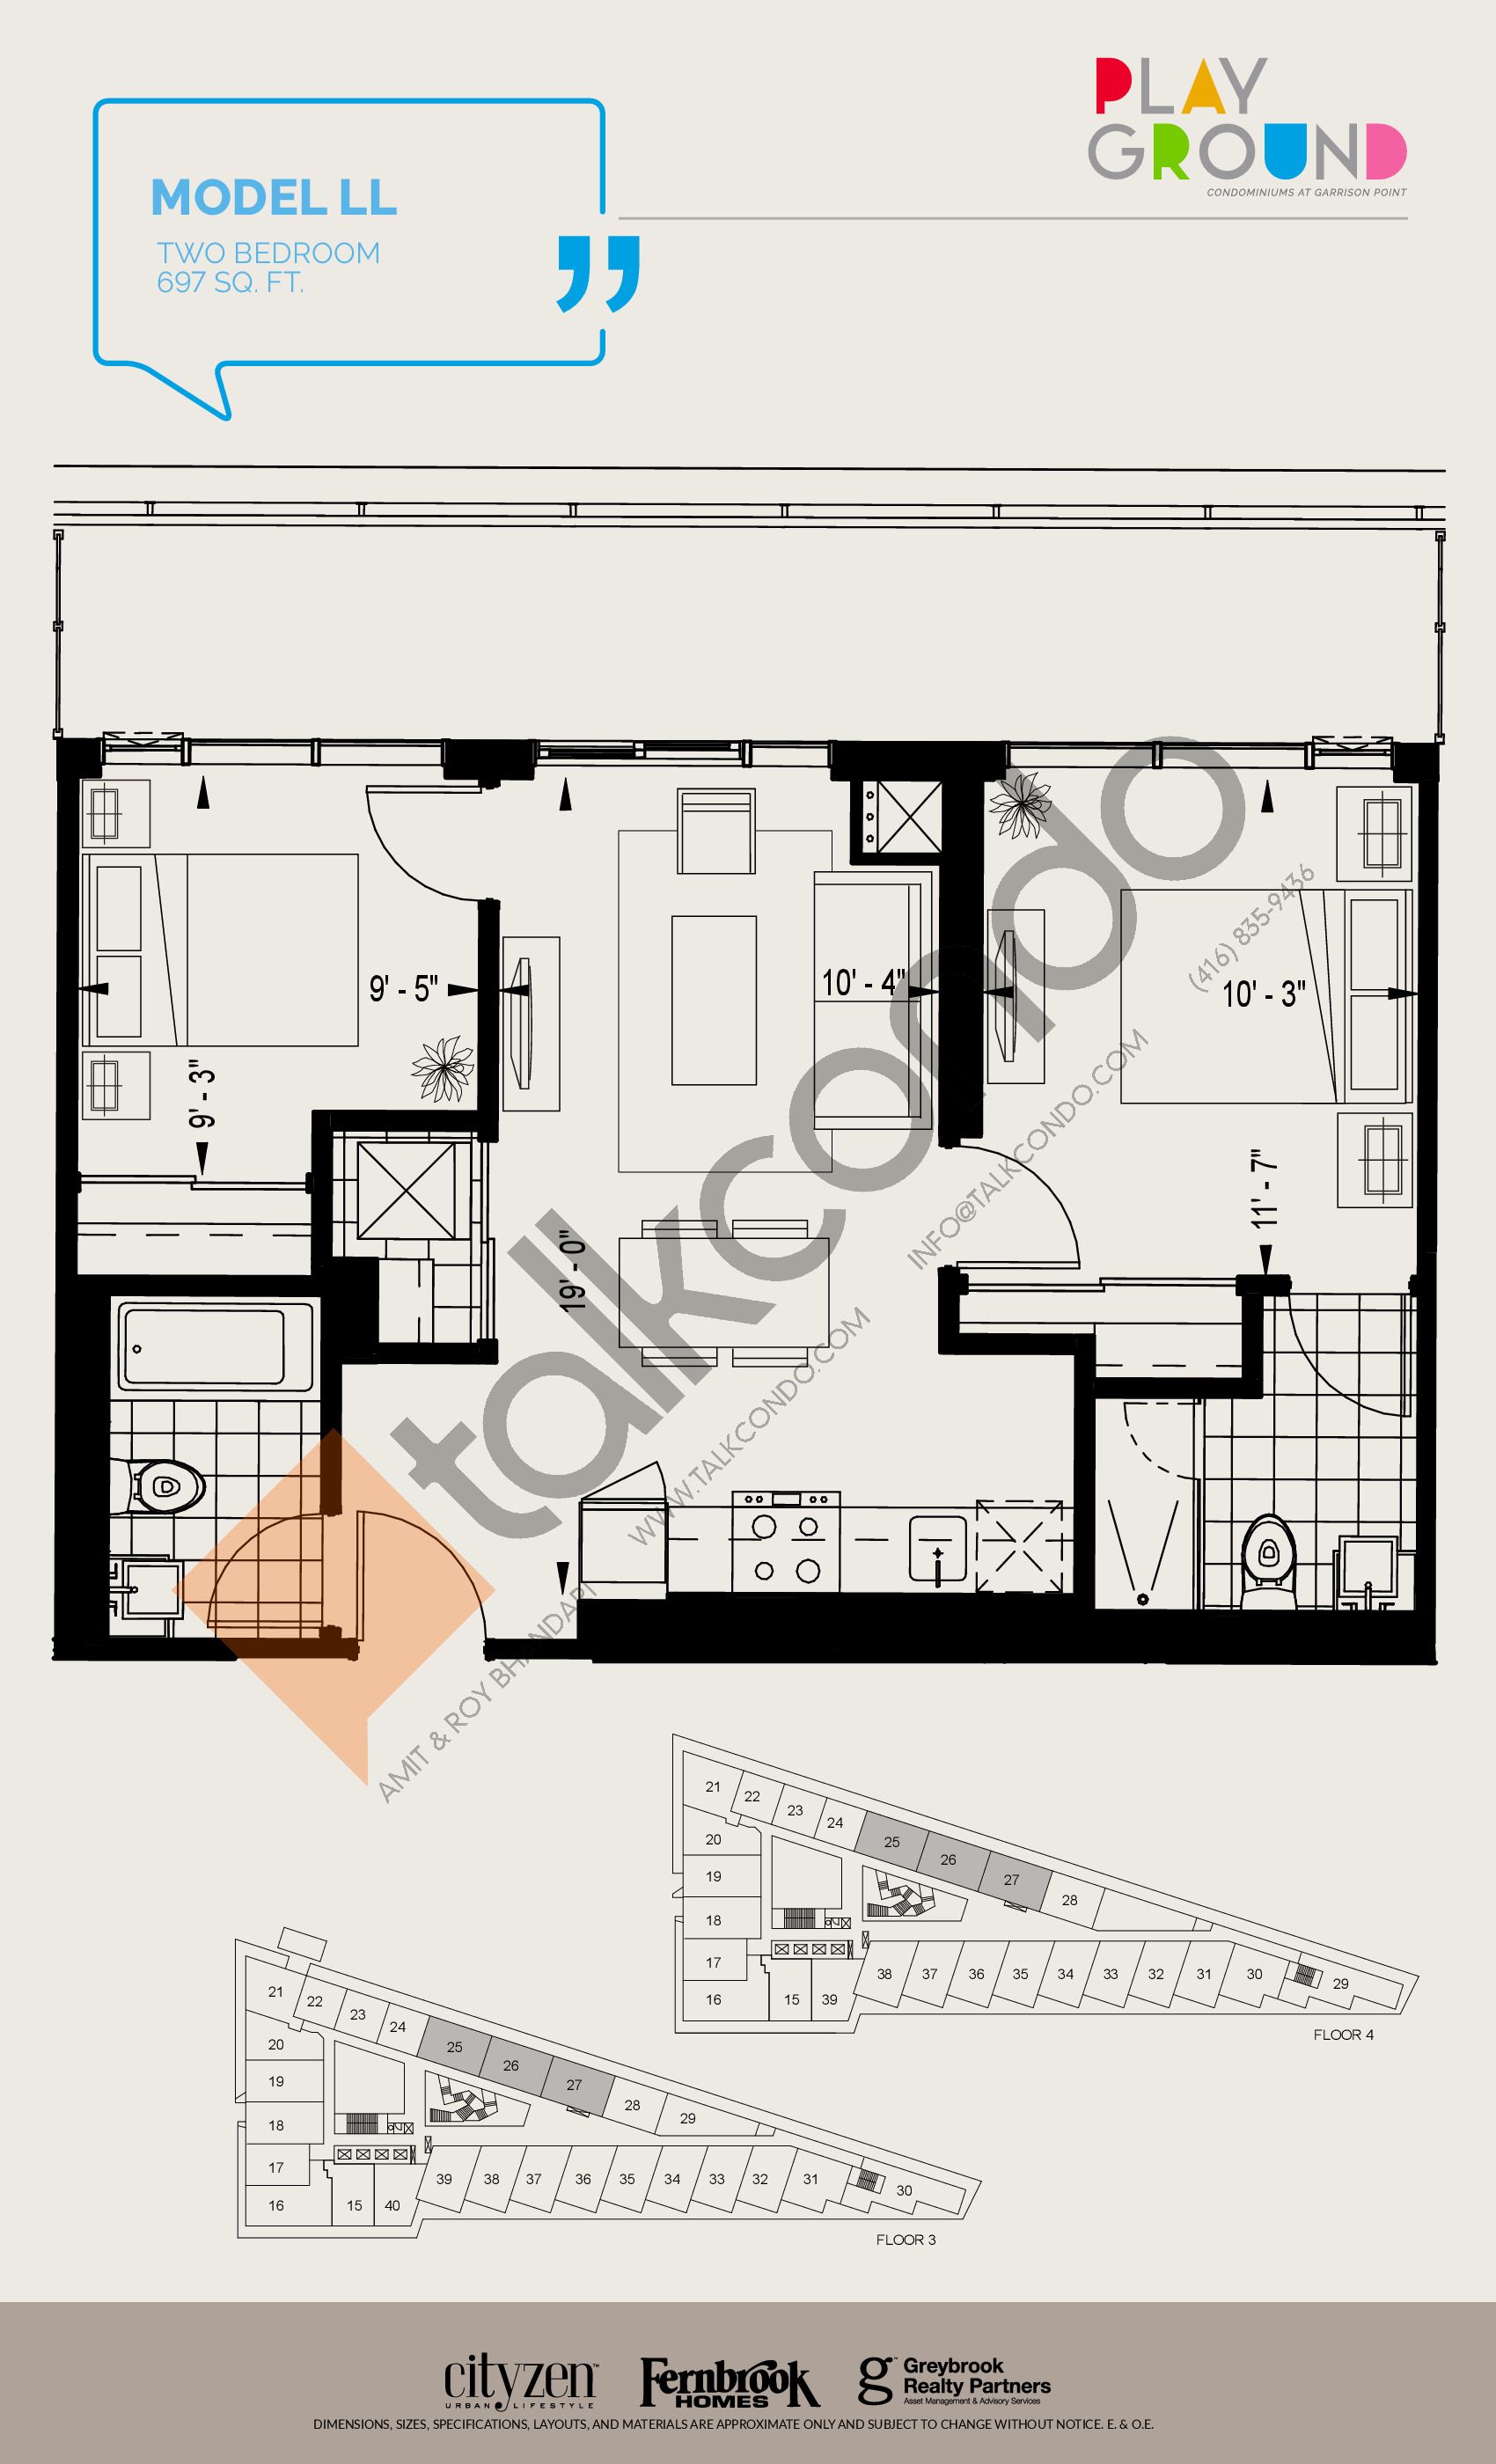 Model LL Floor Plan at Playground Condos at Garrison Point - 697 sq.ft